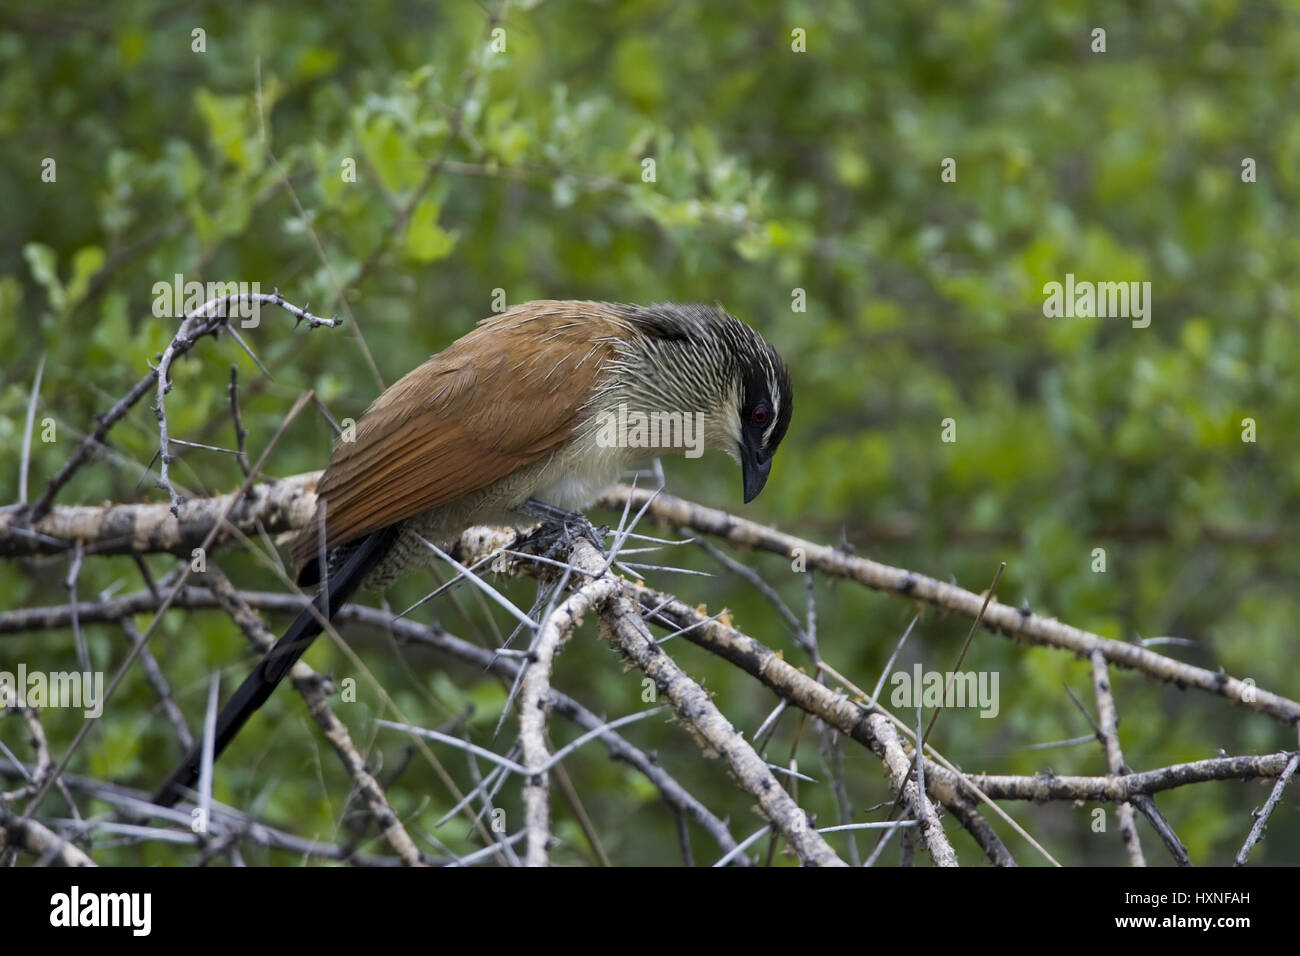 White eyebrows spur cuckoo |Centropus superciliosus - White browed Coucal, Weissbrauen Spornkuckuck |Centropus superciliosus - Stock Image